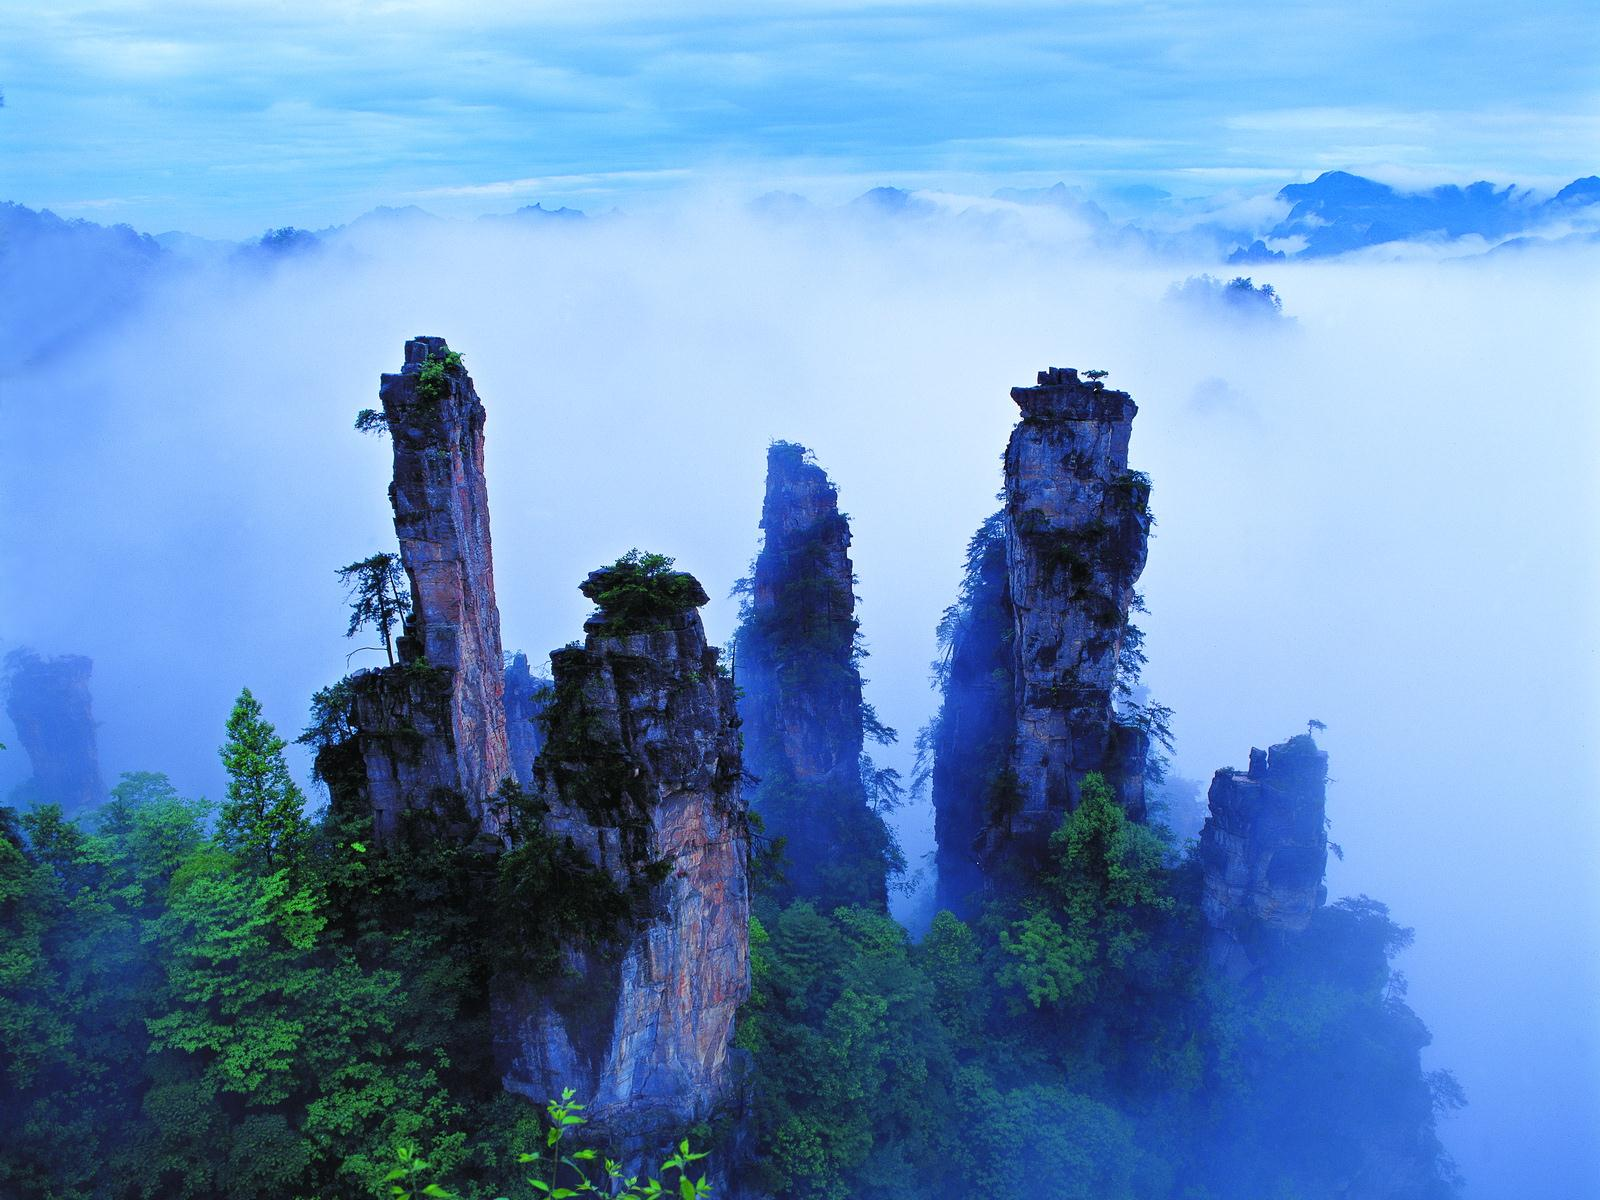 wallpaper: zhangjiajie national park of china (wulingyuan scenic area)